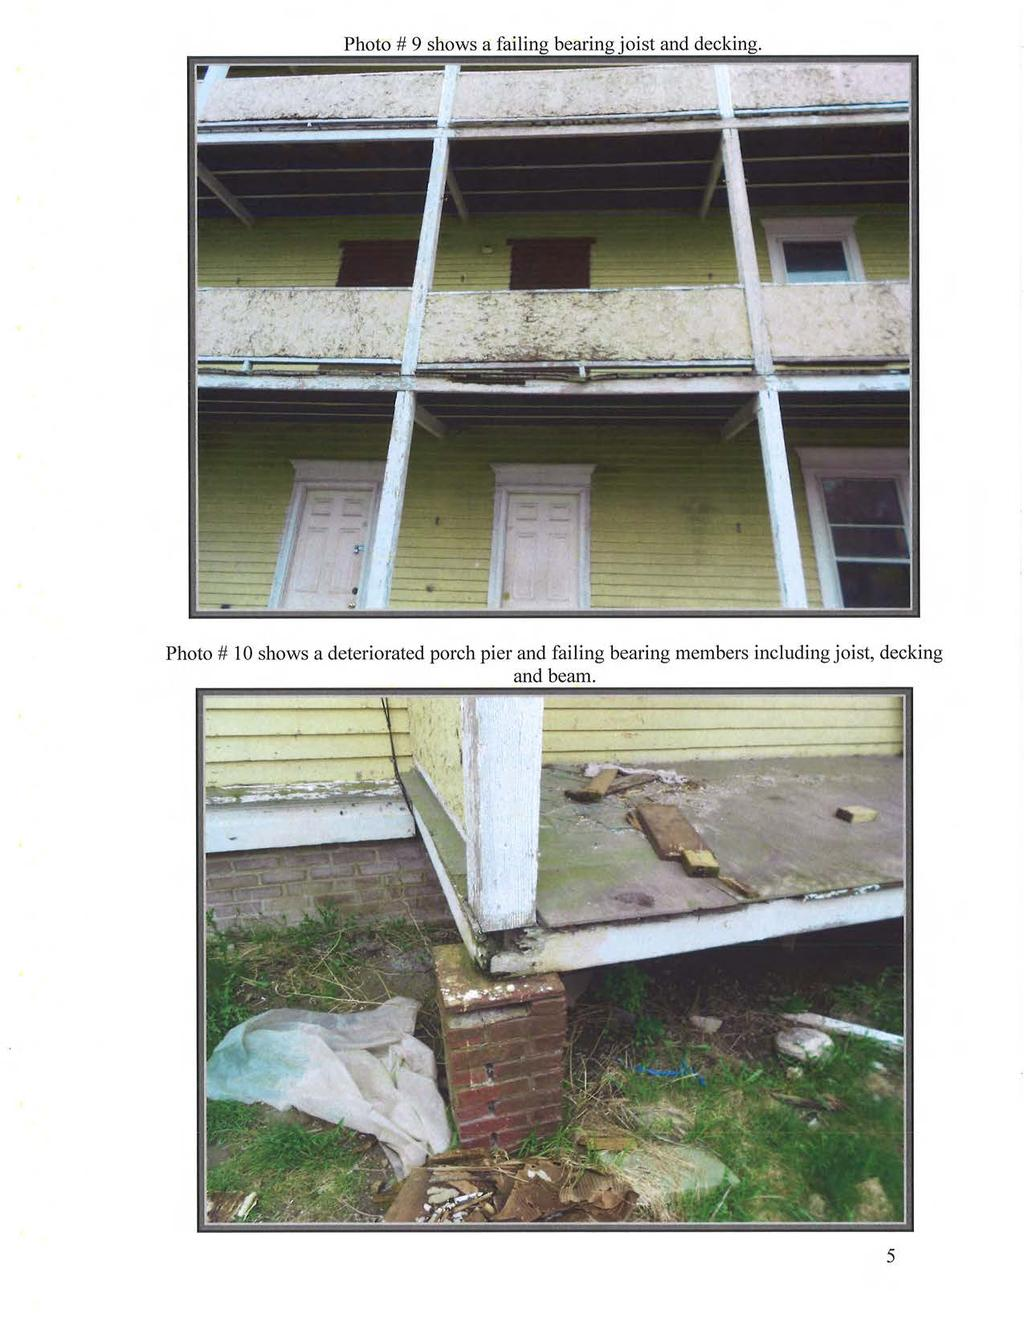 Photo# 10 shows a deteriorated porch pier and failing bearing